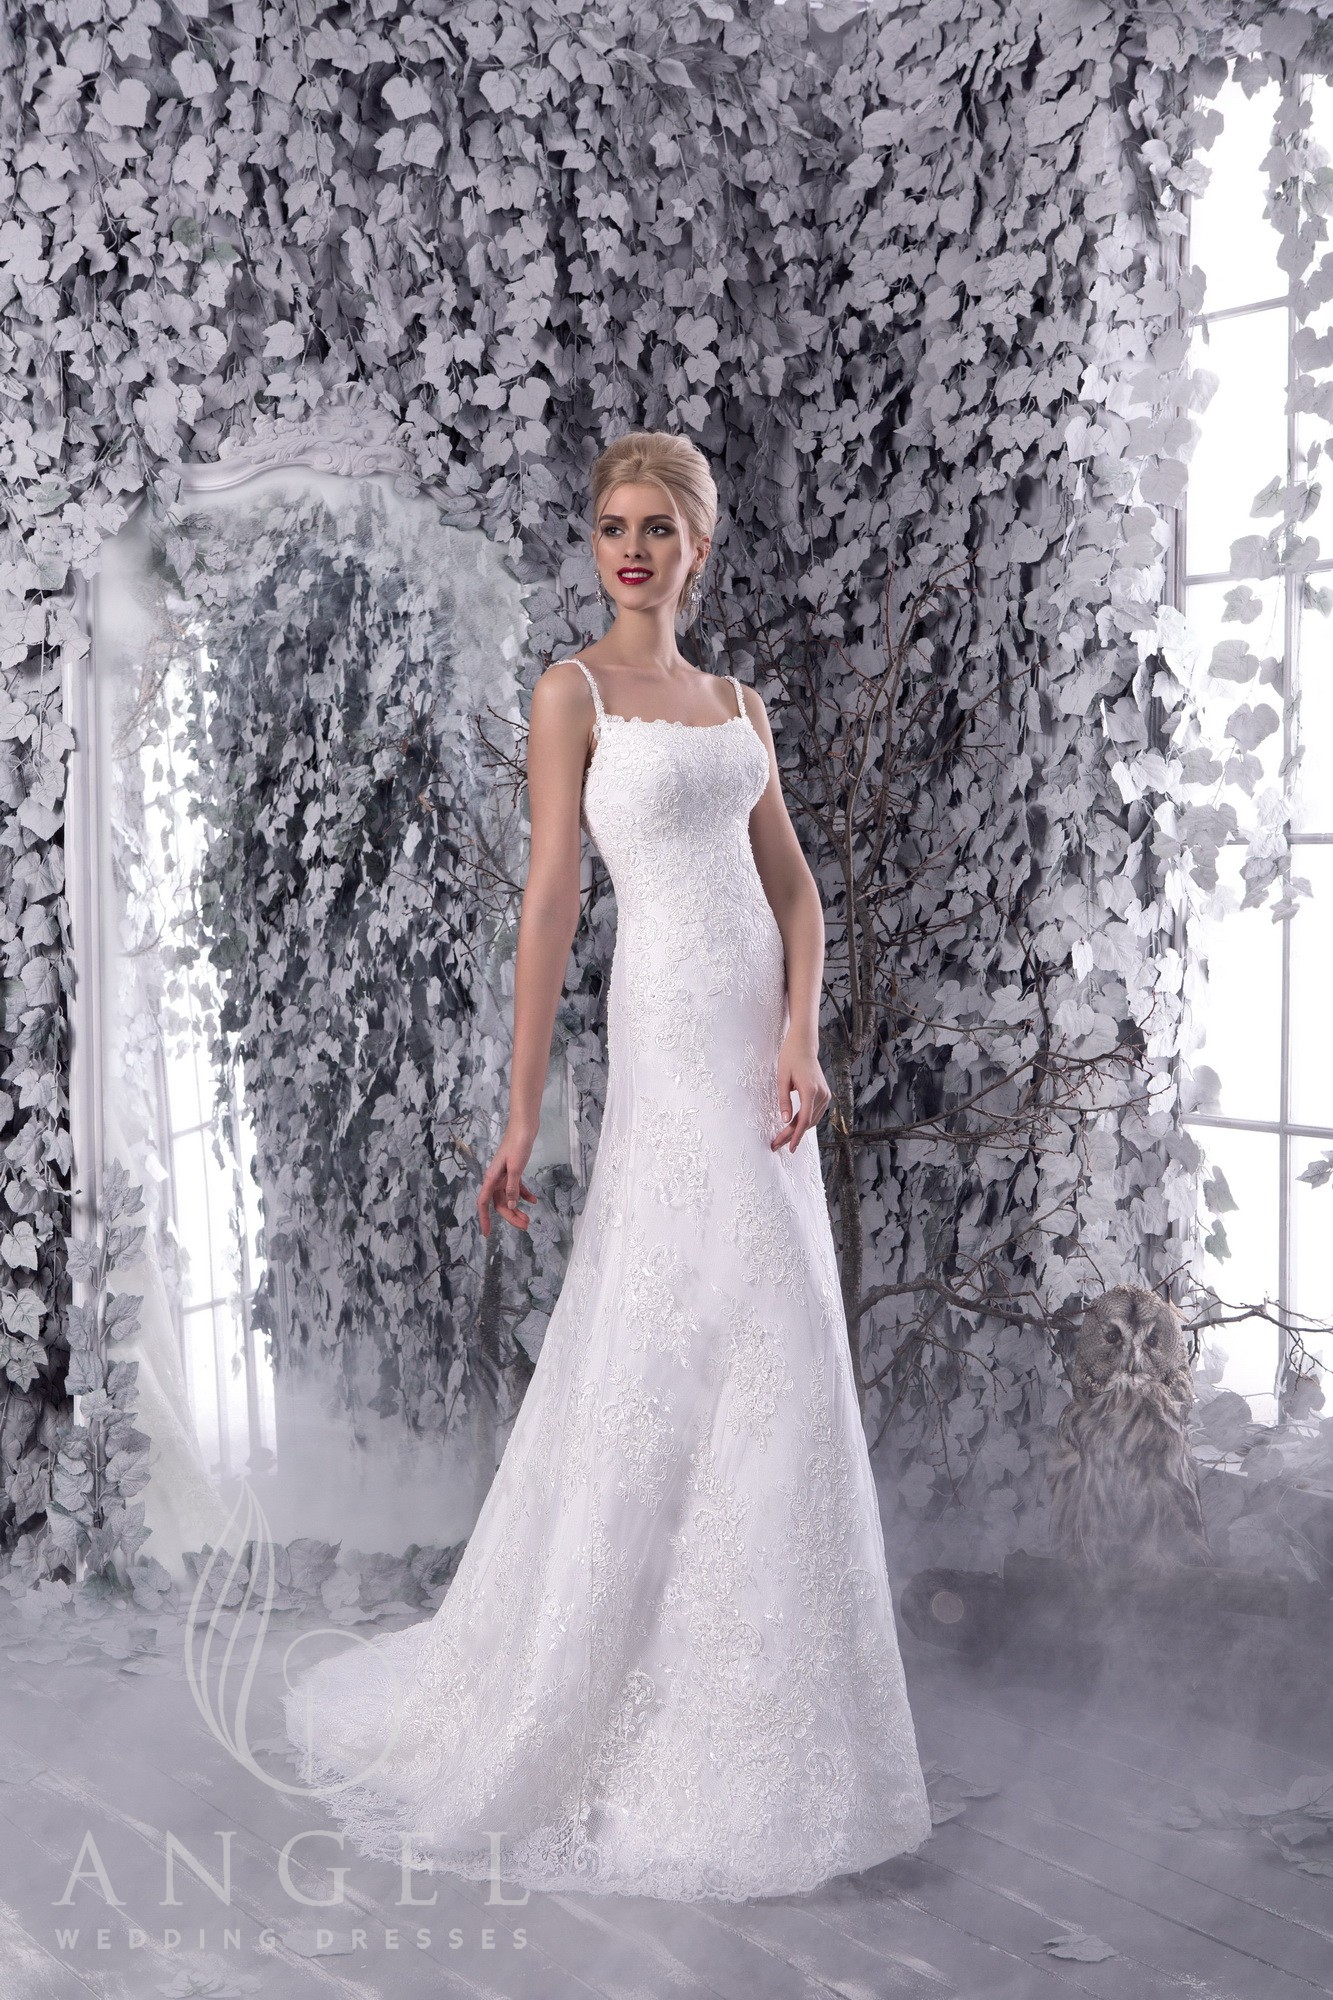 https://angel-novias.com/images/stories/virtuemart/product/DORIS.jpg